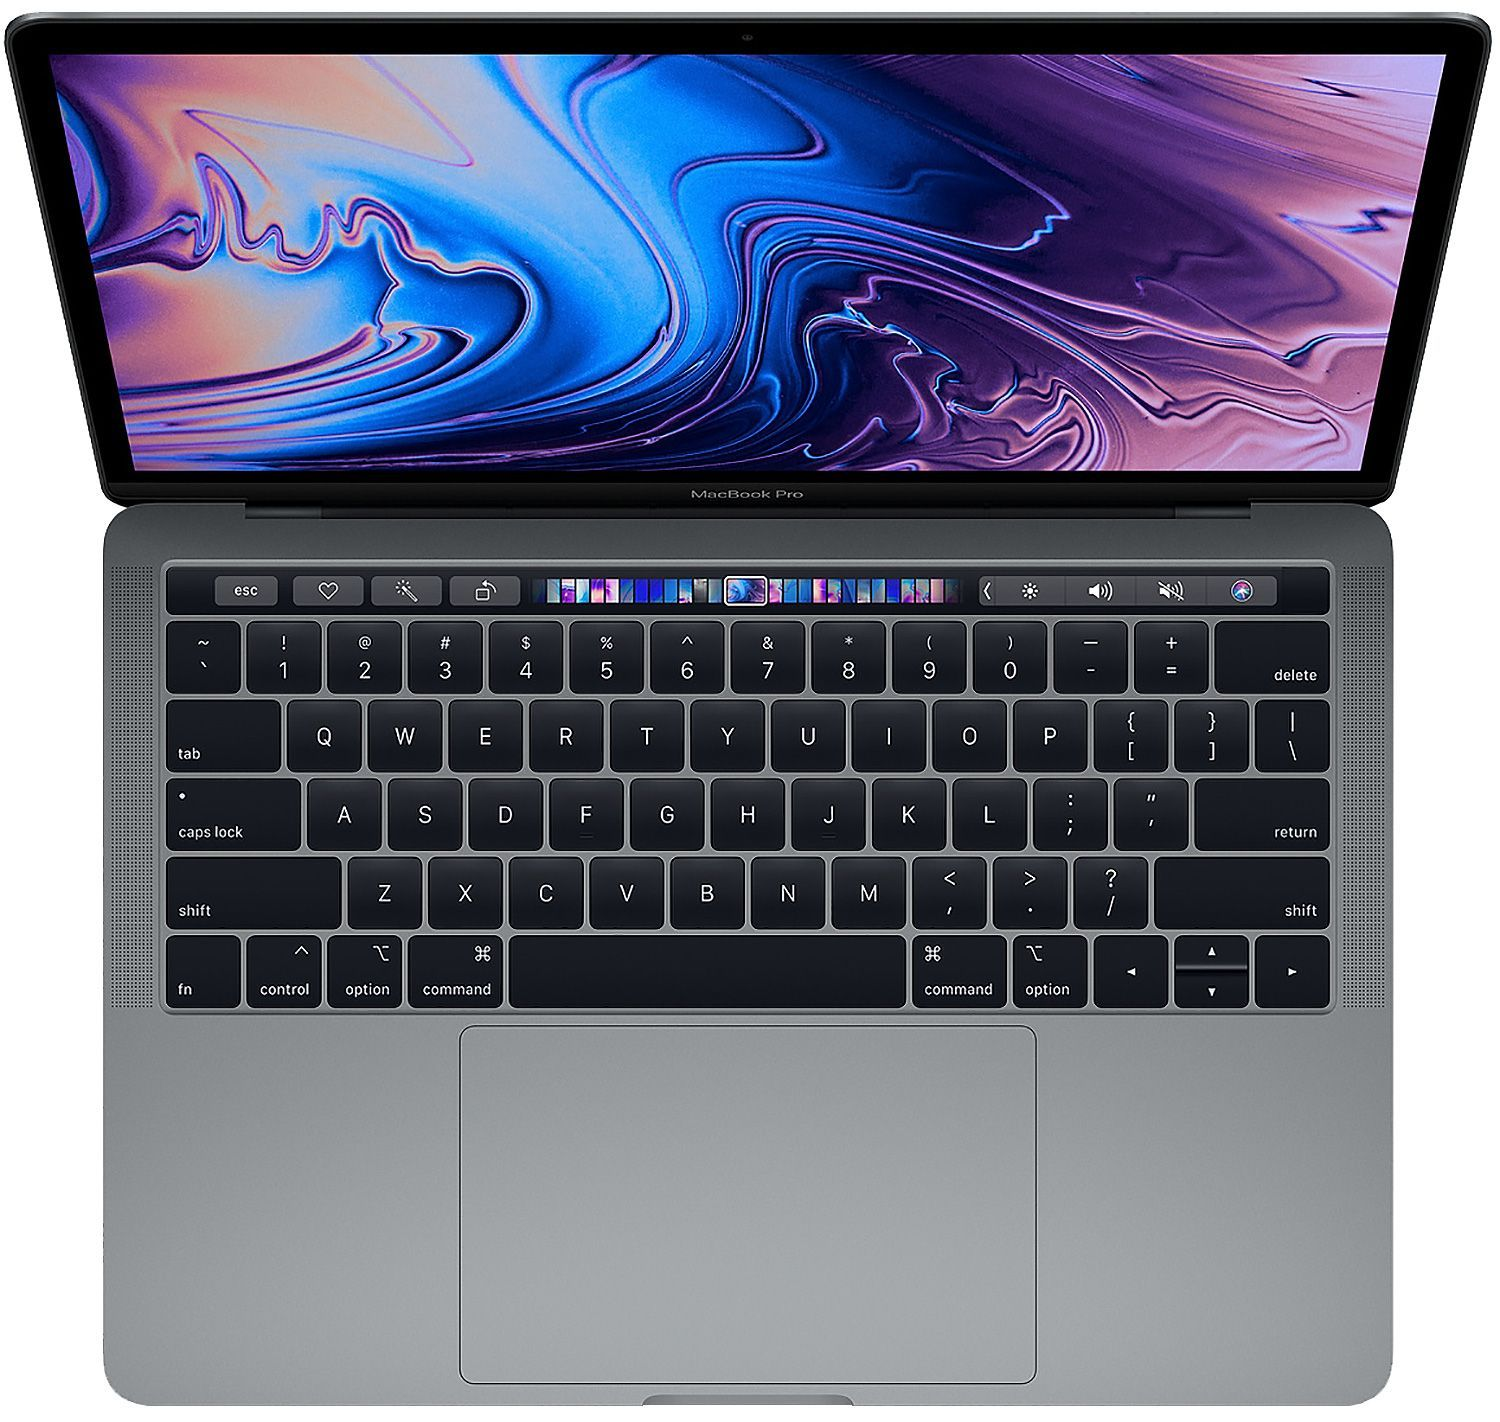 Apple Macbook Pro 13 Space Gray Touch Bar And Touch Id 2 4ghz Intel Core I5 512gb Ssd Laptop In 2020 Apple Macbook Macbook Pro Touch Bar Apple Macbook Pro